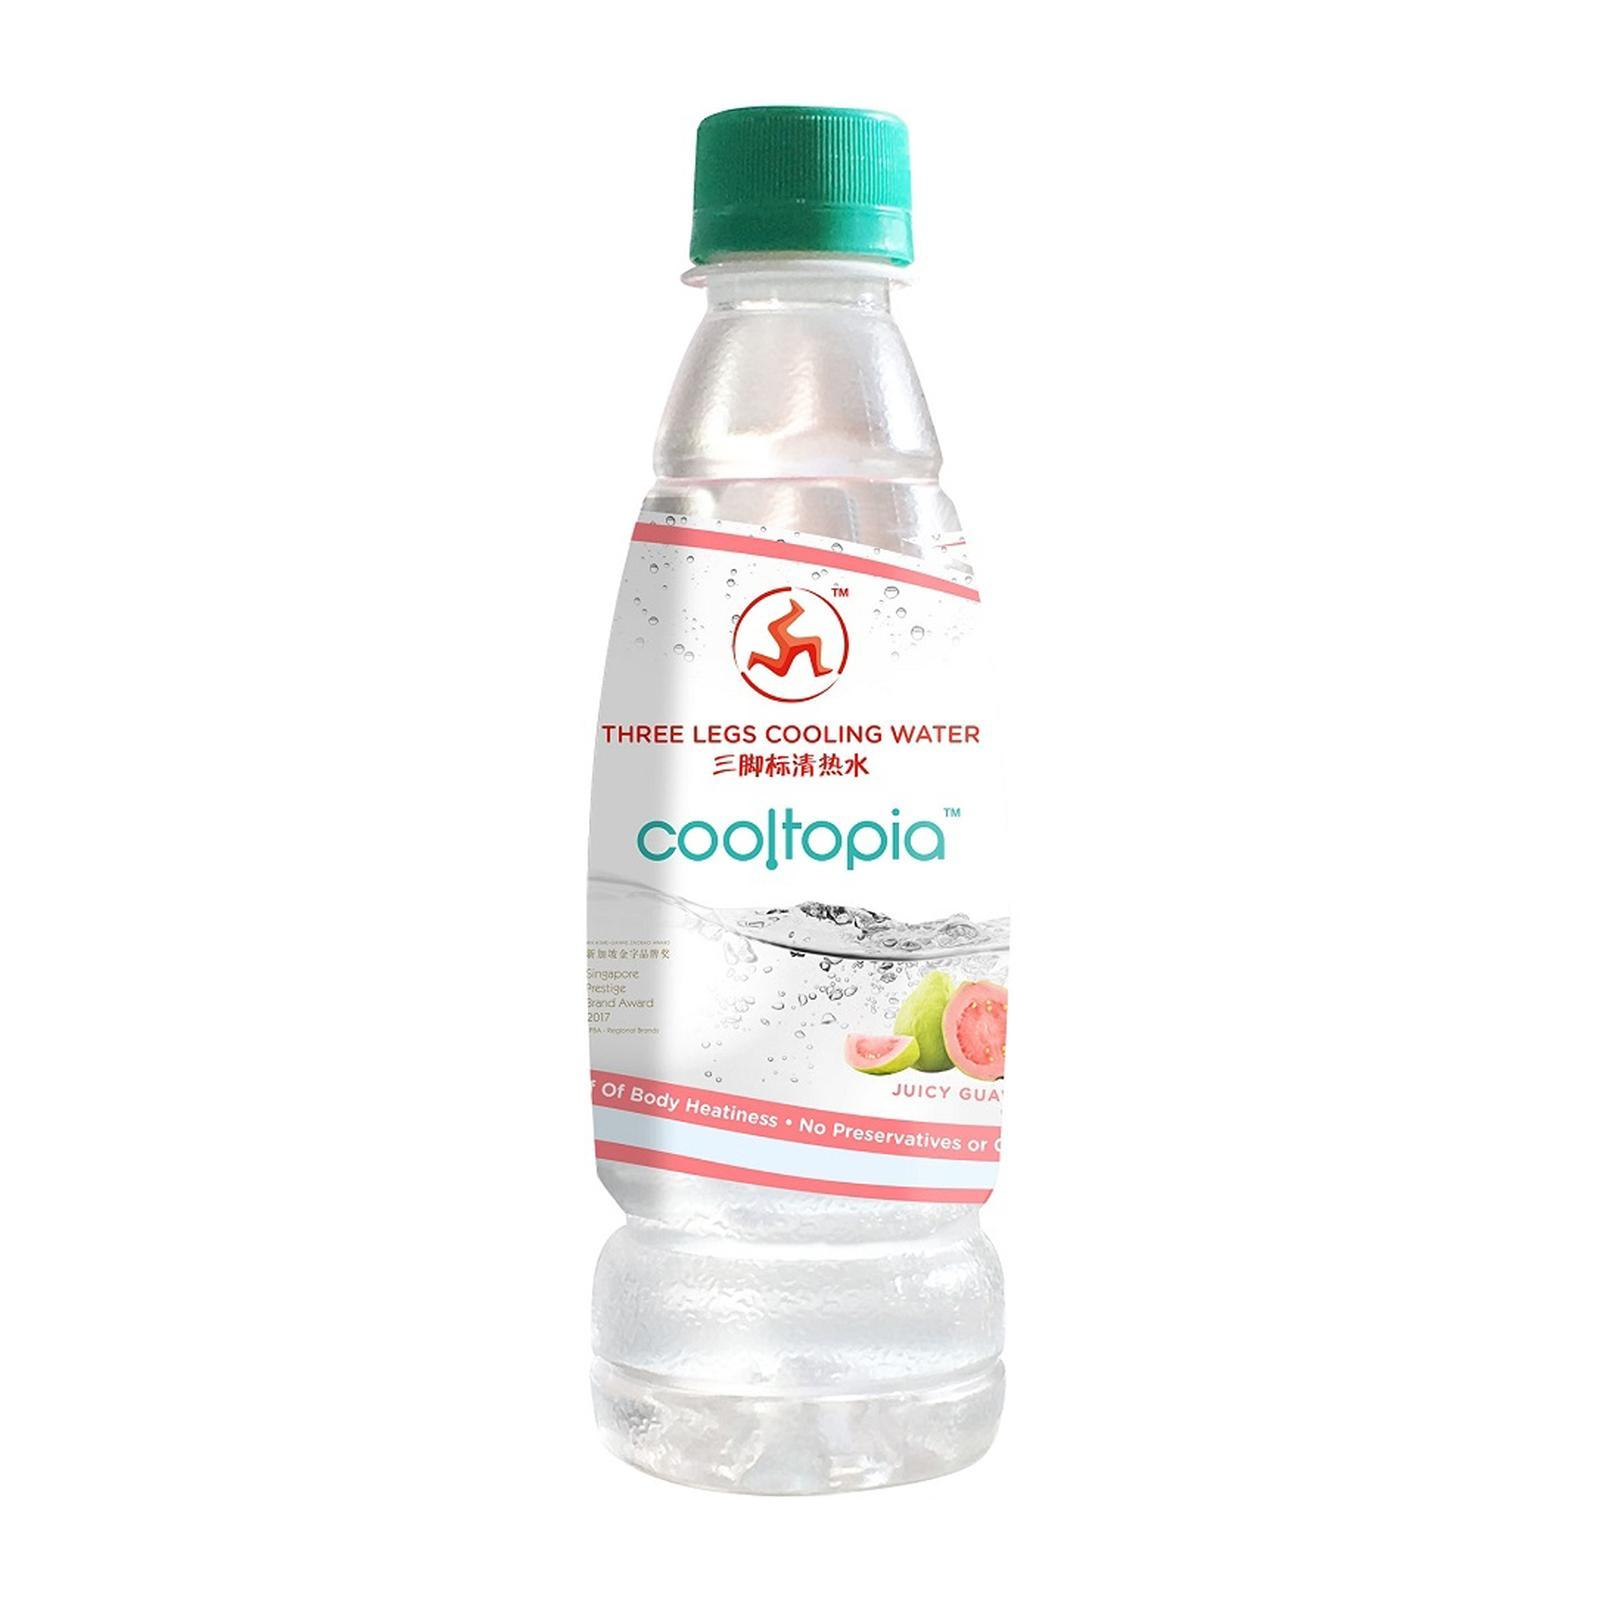 Three Legs Cooling Water - Cooltopia Juicy Guava